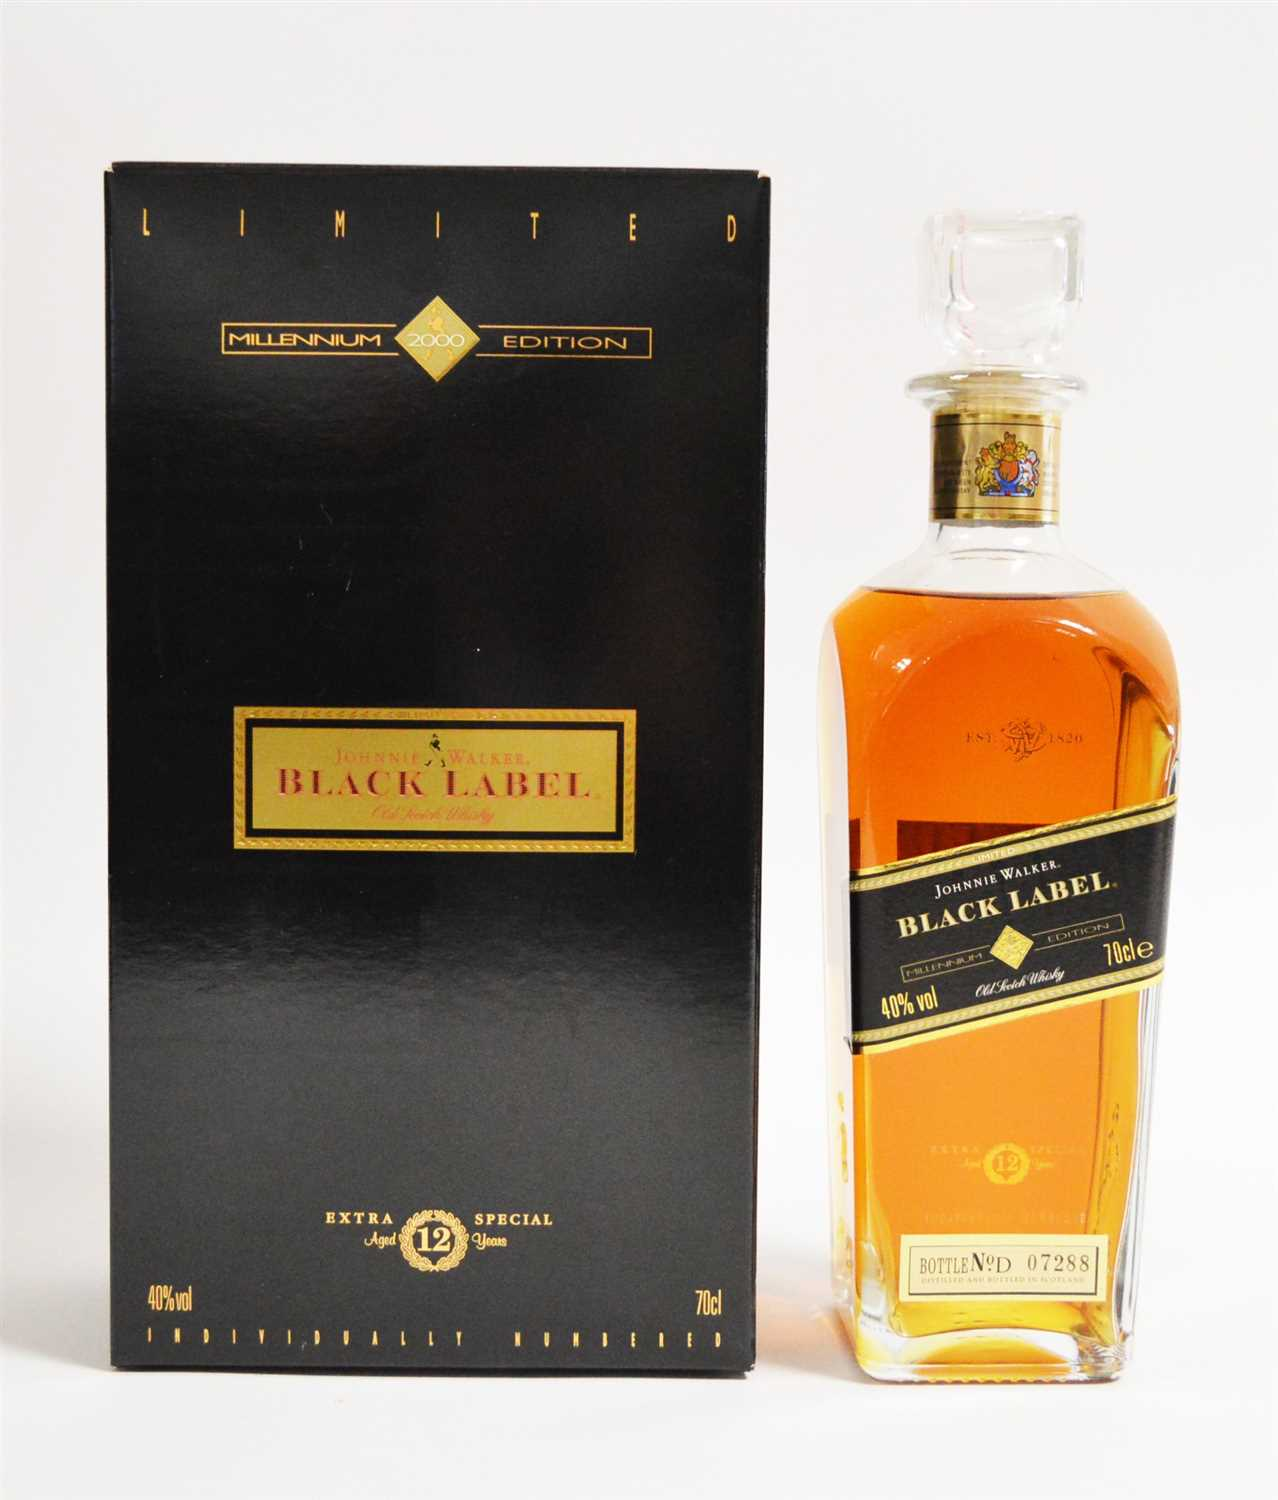 Lot 350-Johnnie Walker Millennium Edition